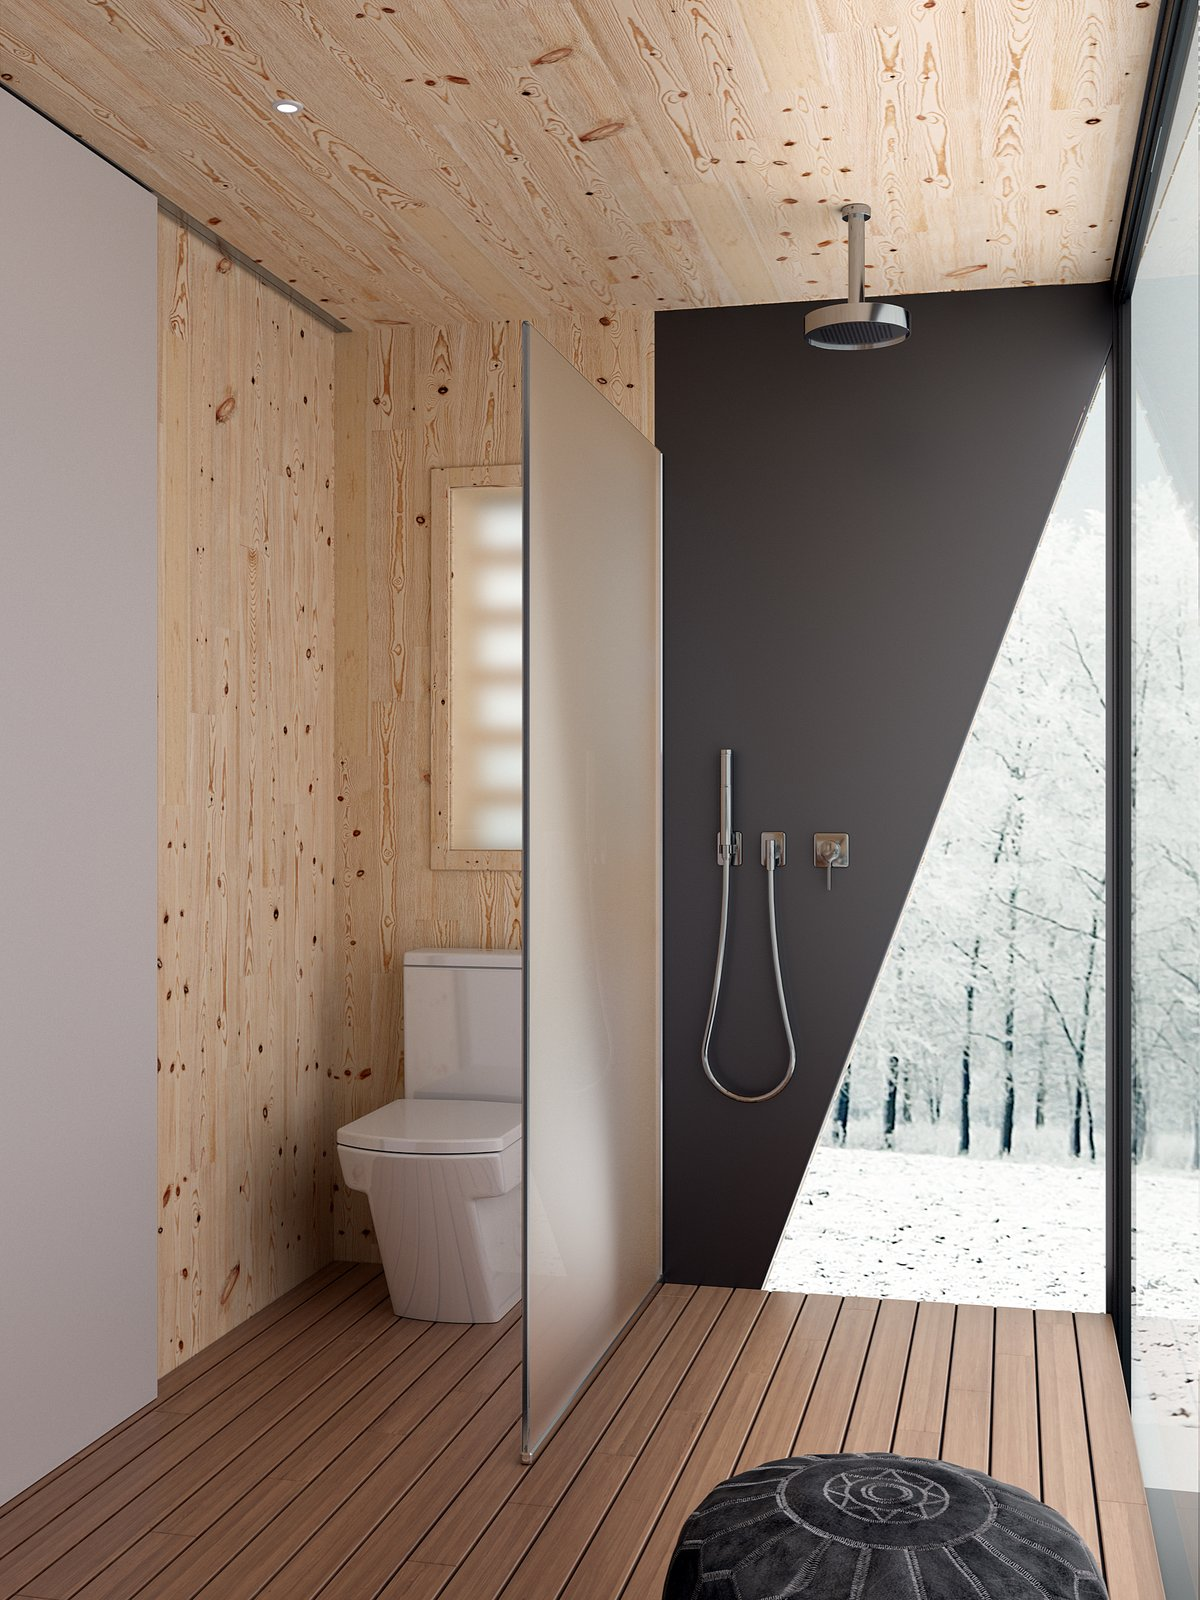 Bath Room, Medium Hardwood Floor, Open Shower, Ceiling Lighting, Recessed Lighting, and One Piece Toilet  Photo 9 of 9 in This Modular Eco-Hotel Room Is Poised to Drop Into Nearly Any Setting